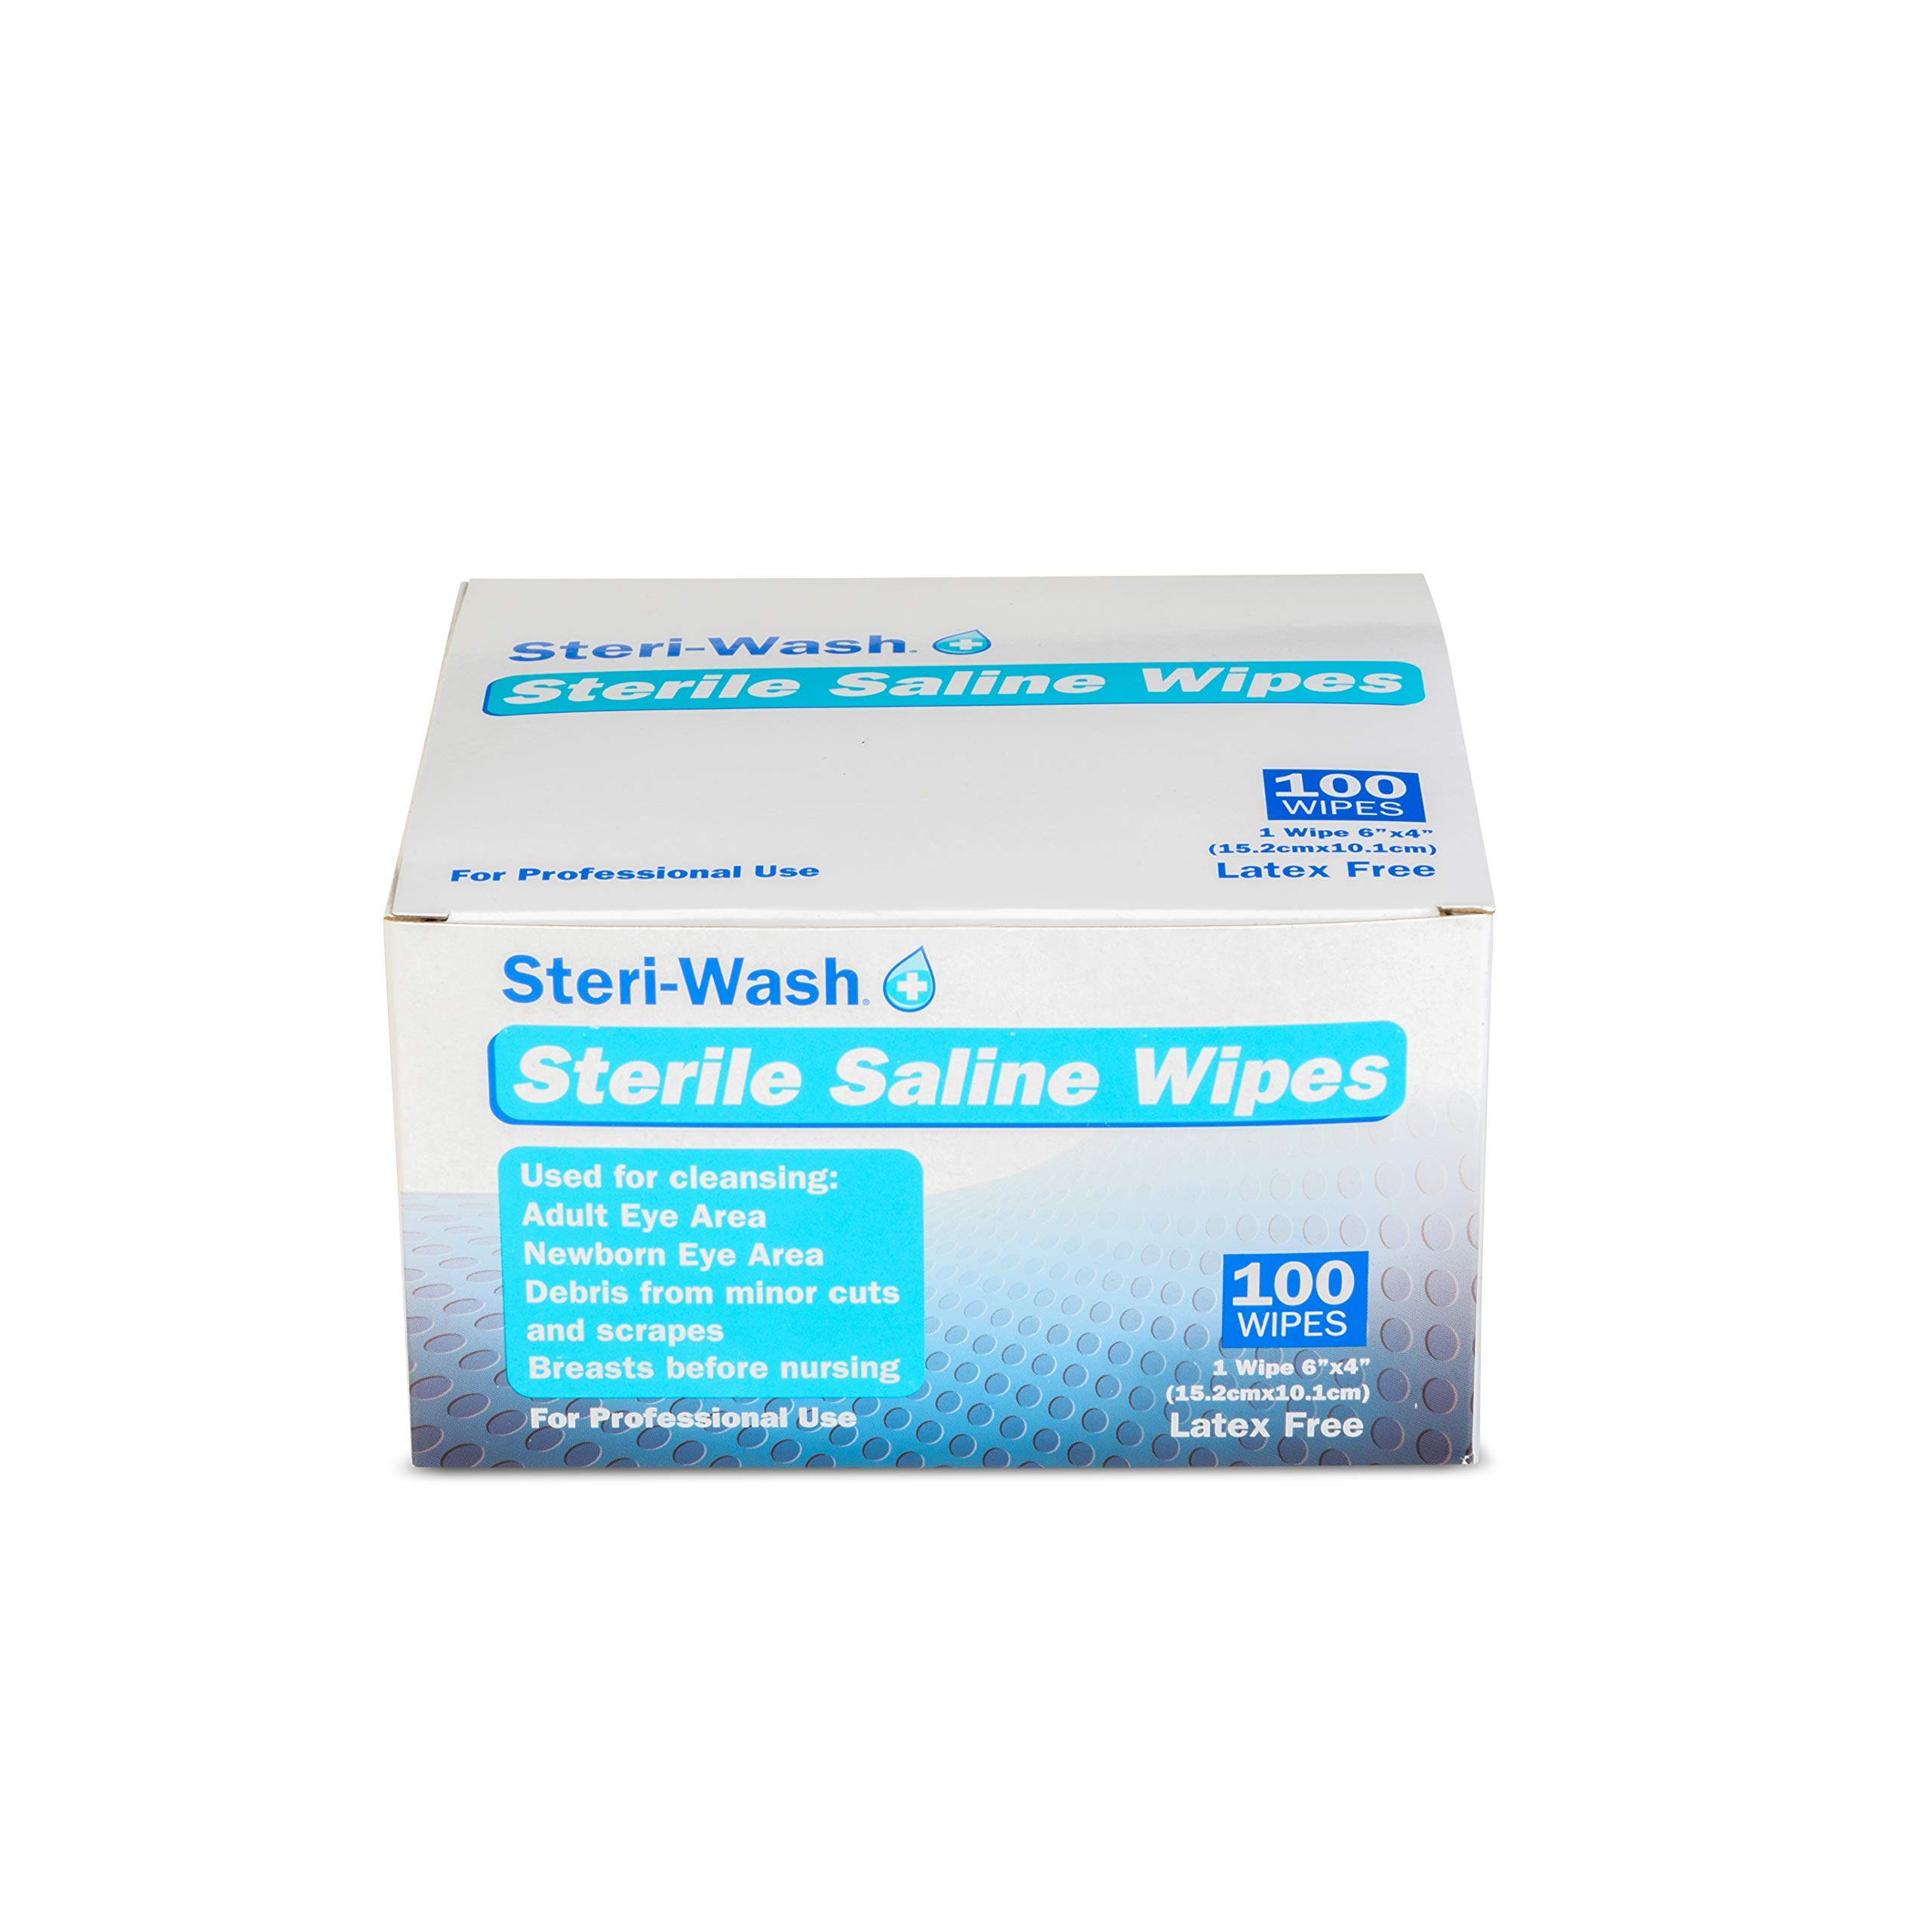 Steri-Wash Aftercare Piercing Wipes 100 Count by STERI - WASH